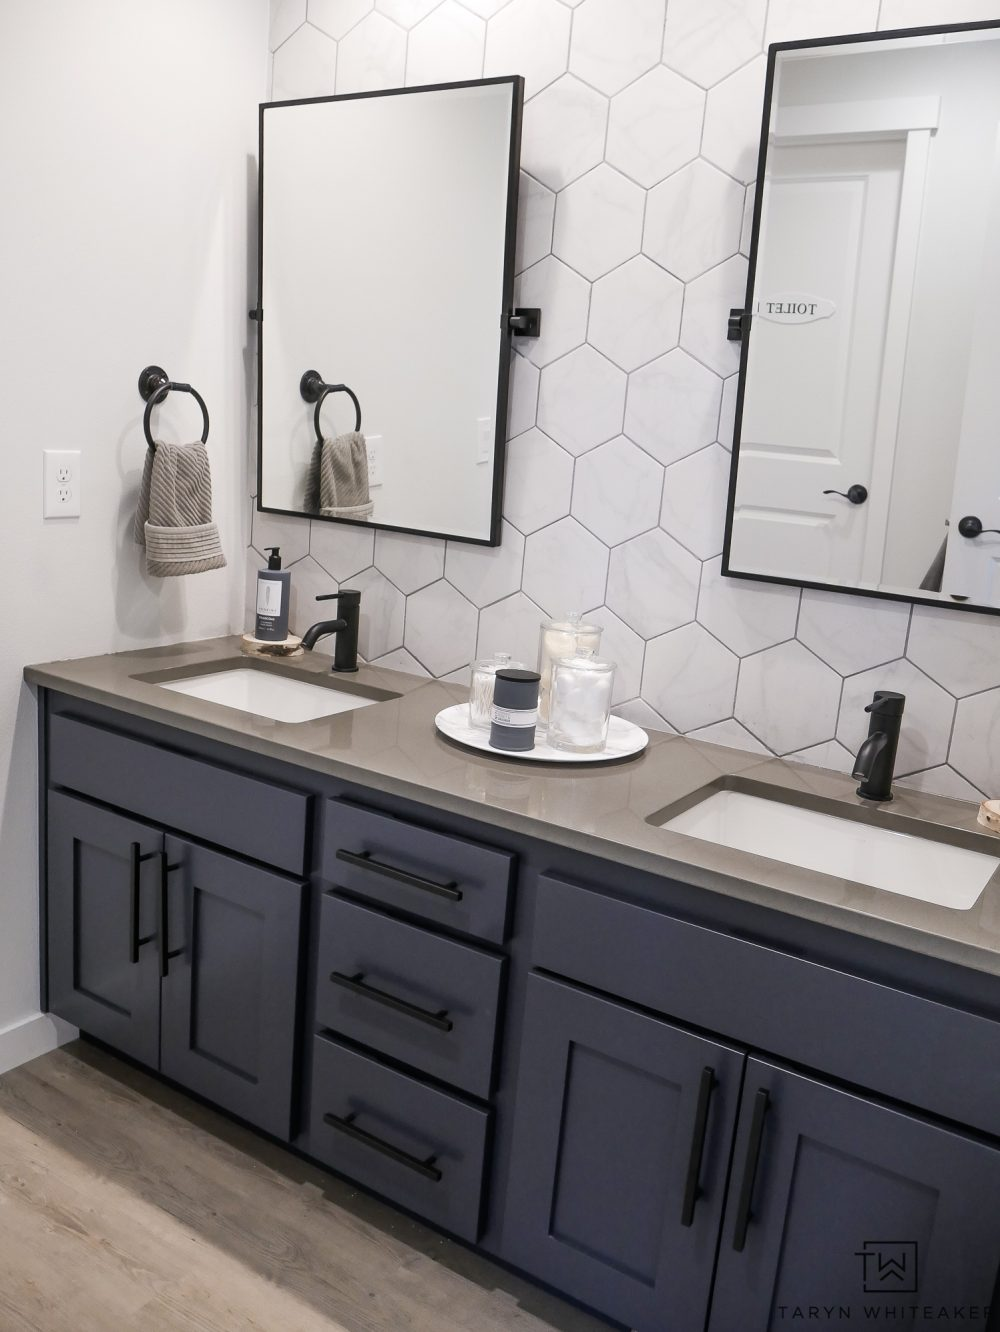 Check out with Kids' Jack-n-Jill Bathroom with a Rustic Modern Look to it with large hexagon tile backsplash, industrial touches and charcoal blue cabinets!